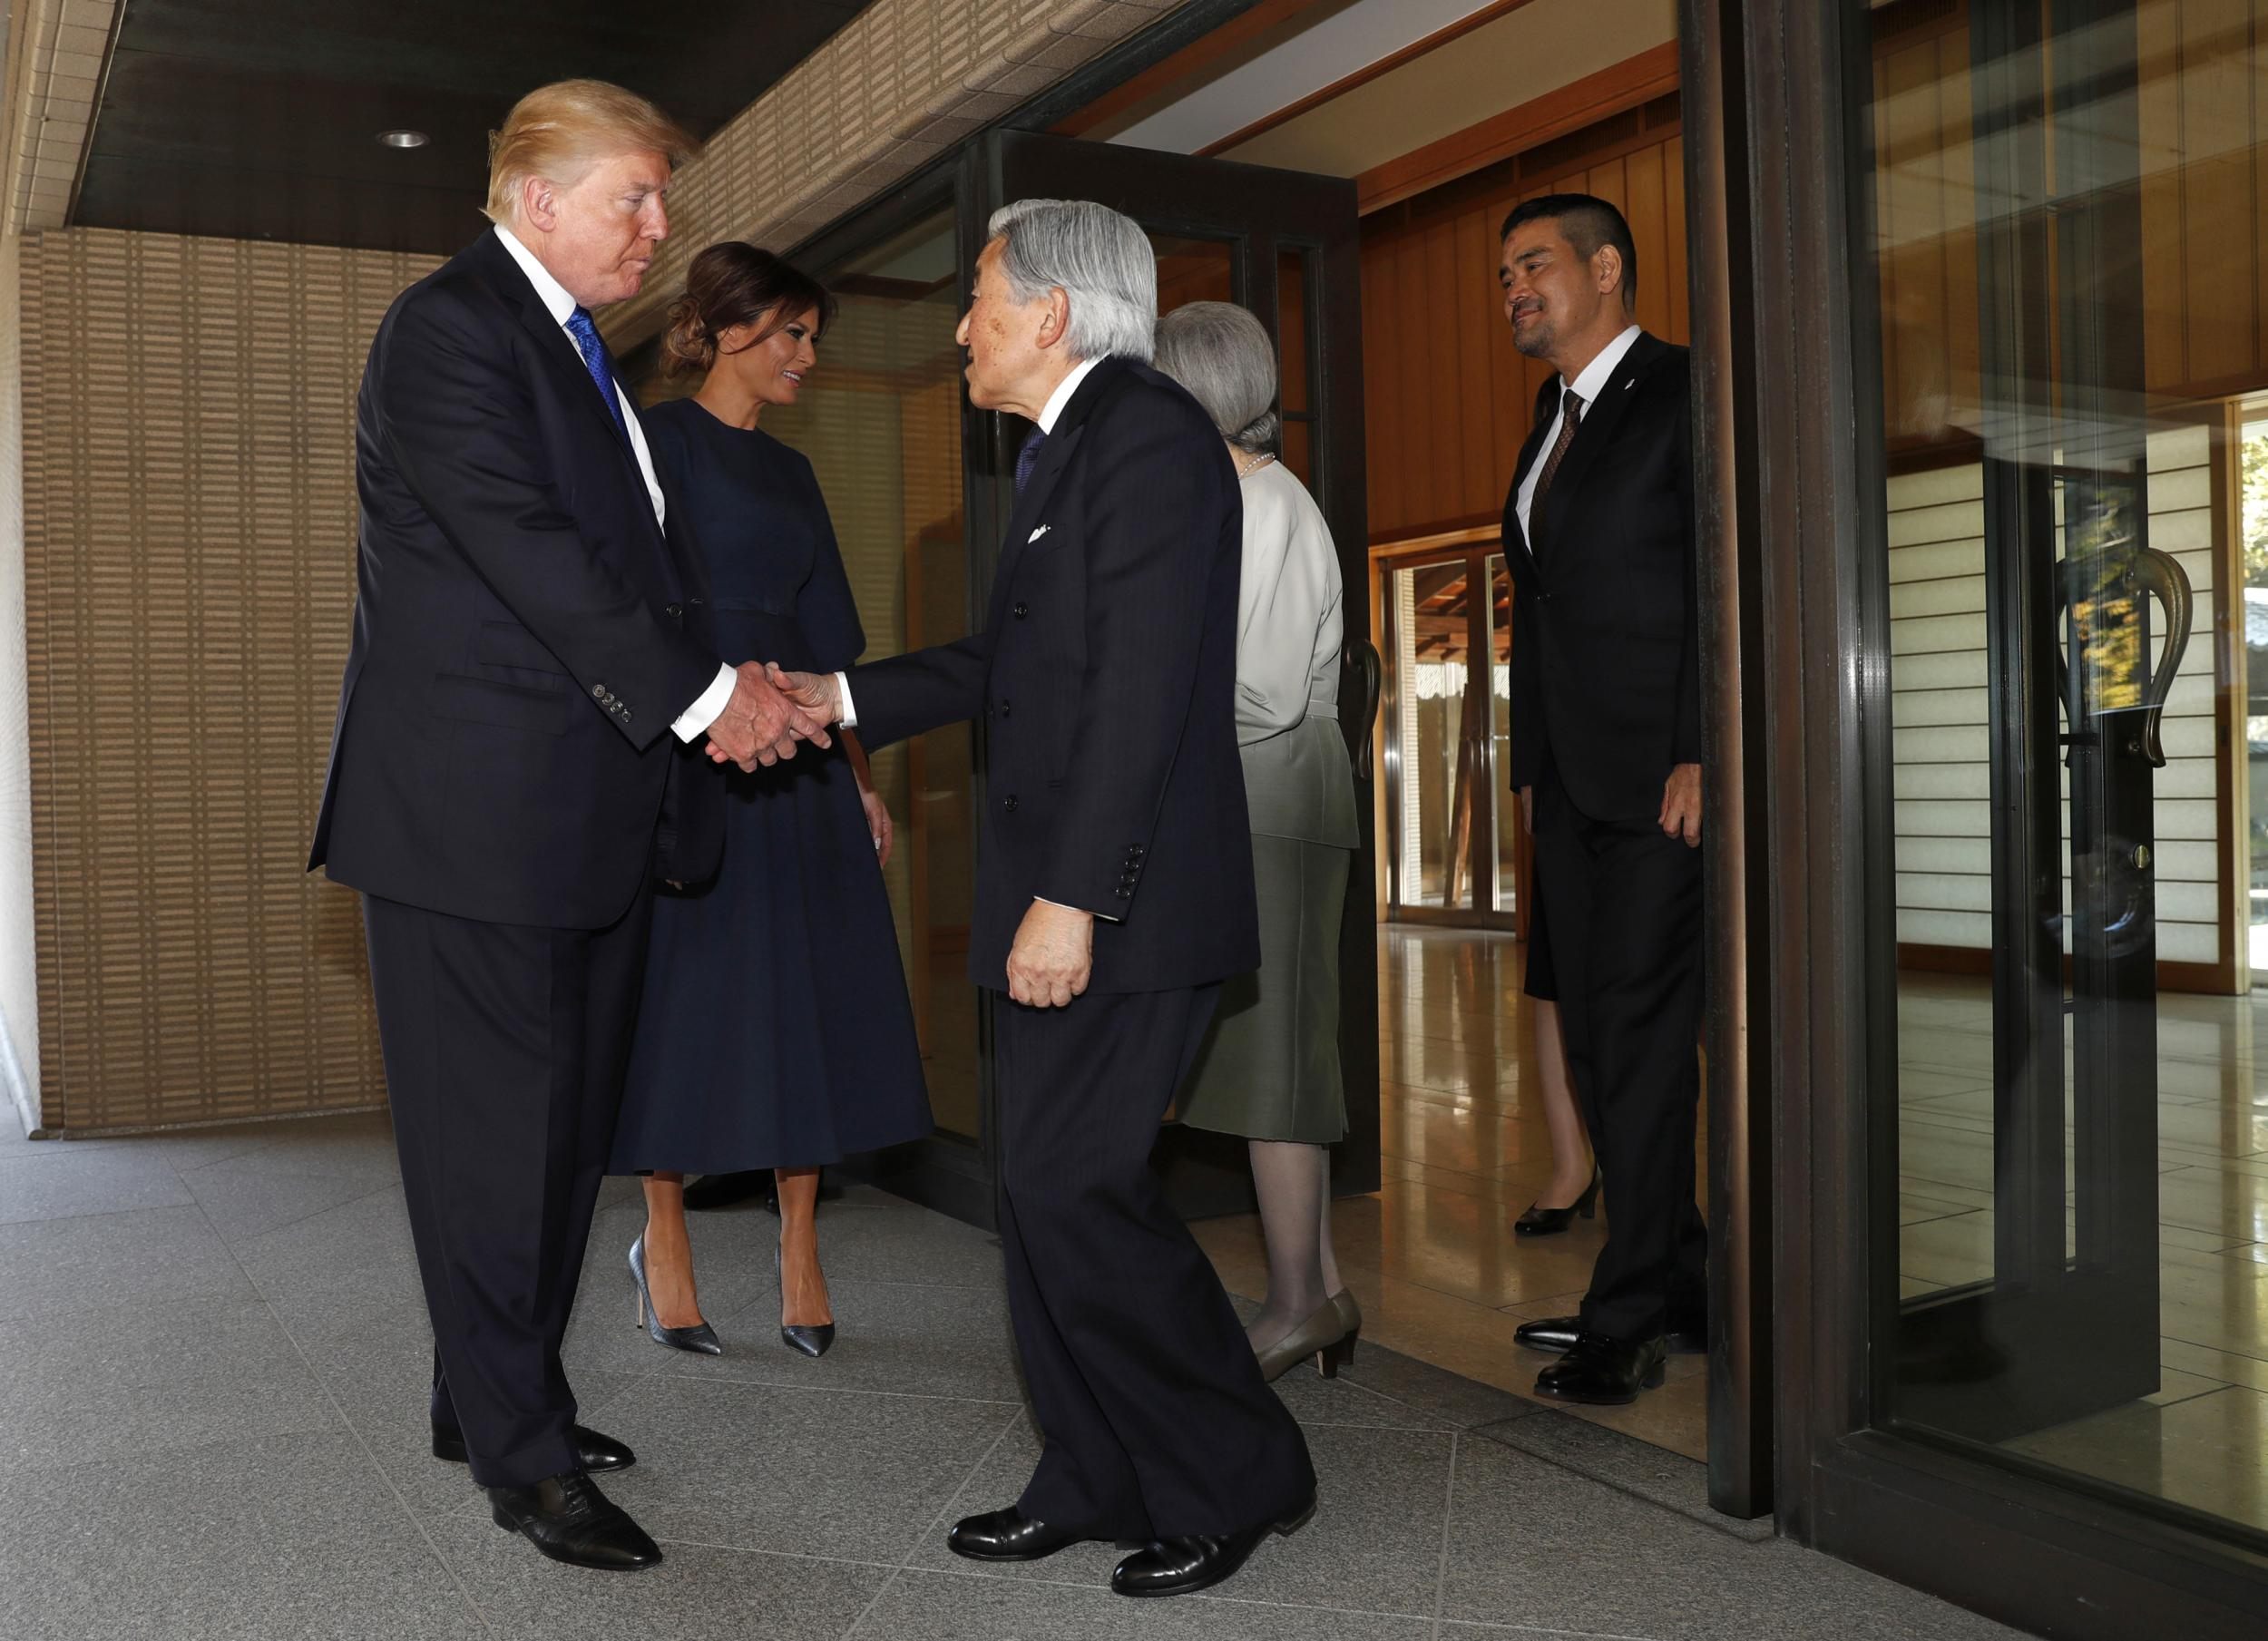 Donald Trump Greets Japanese Emperor Akihito Without Bowing The